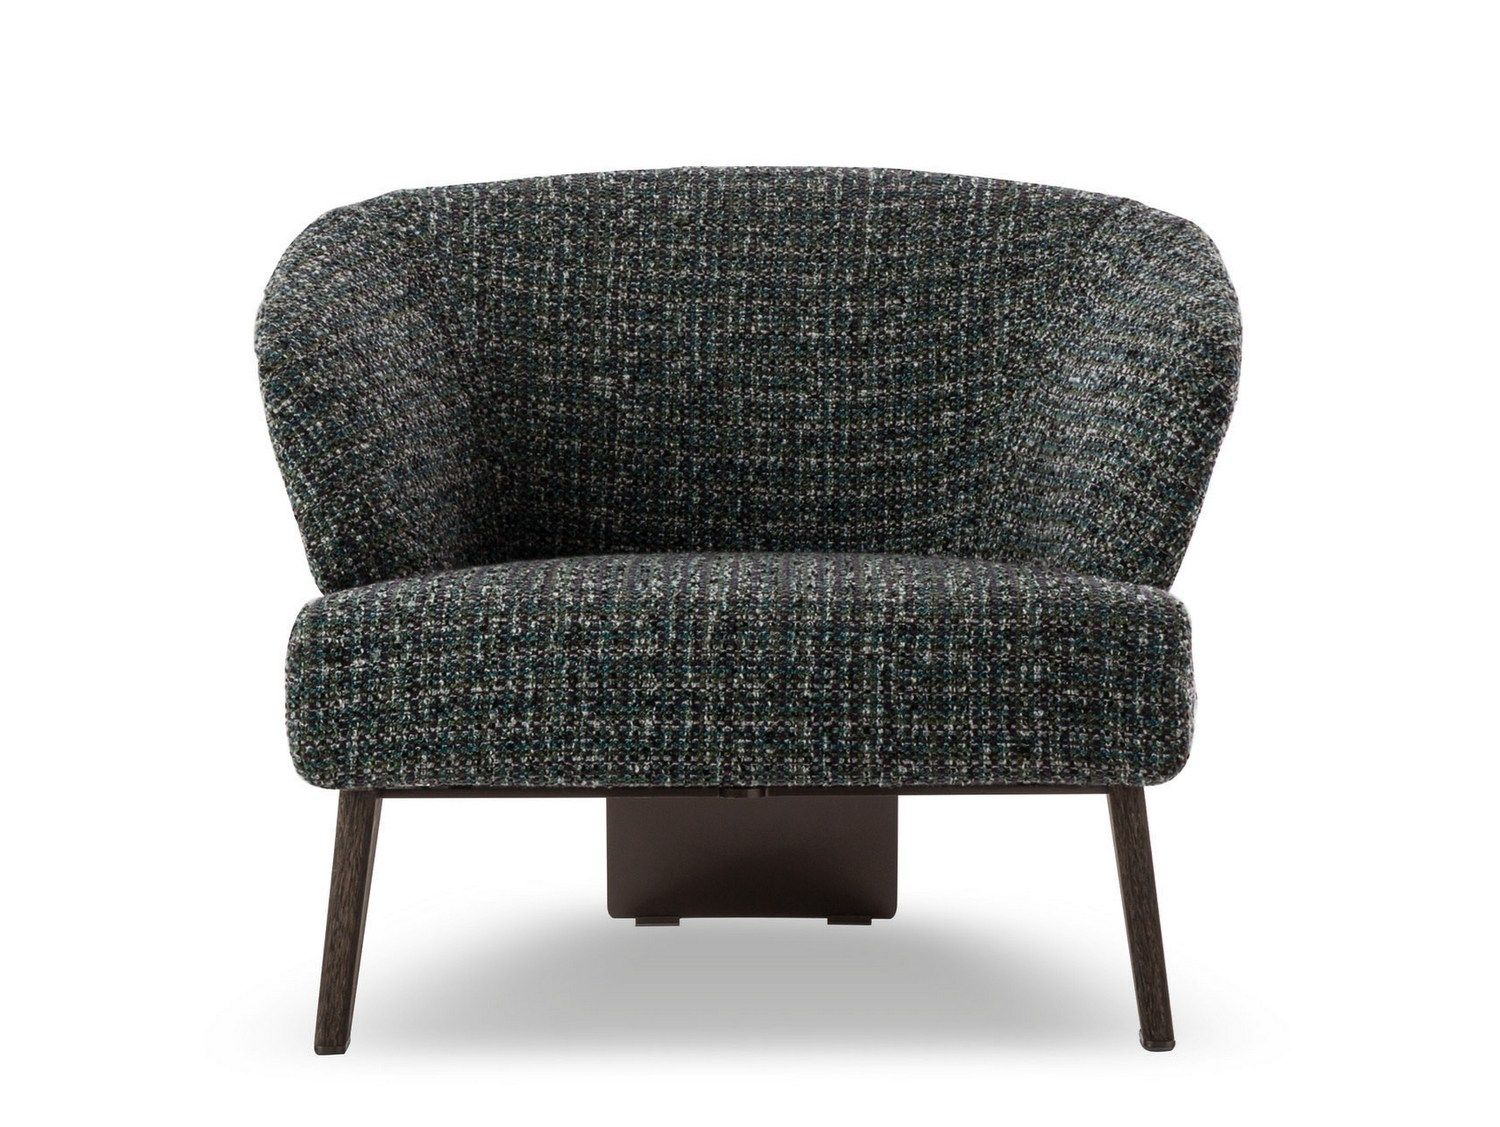 Image Result For Creed Chair Minotti